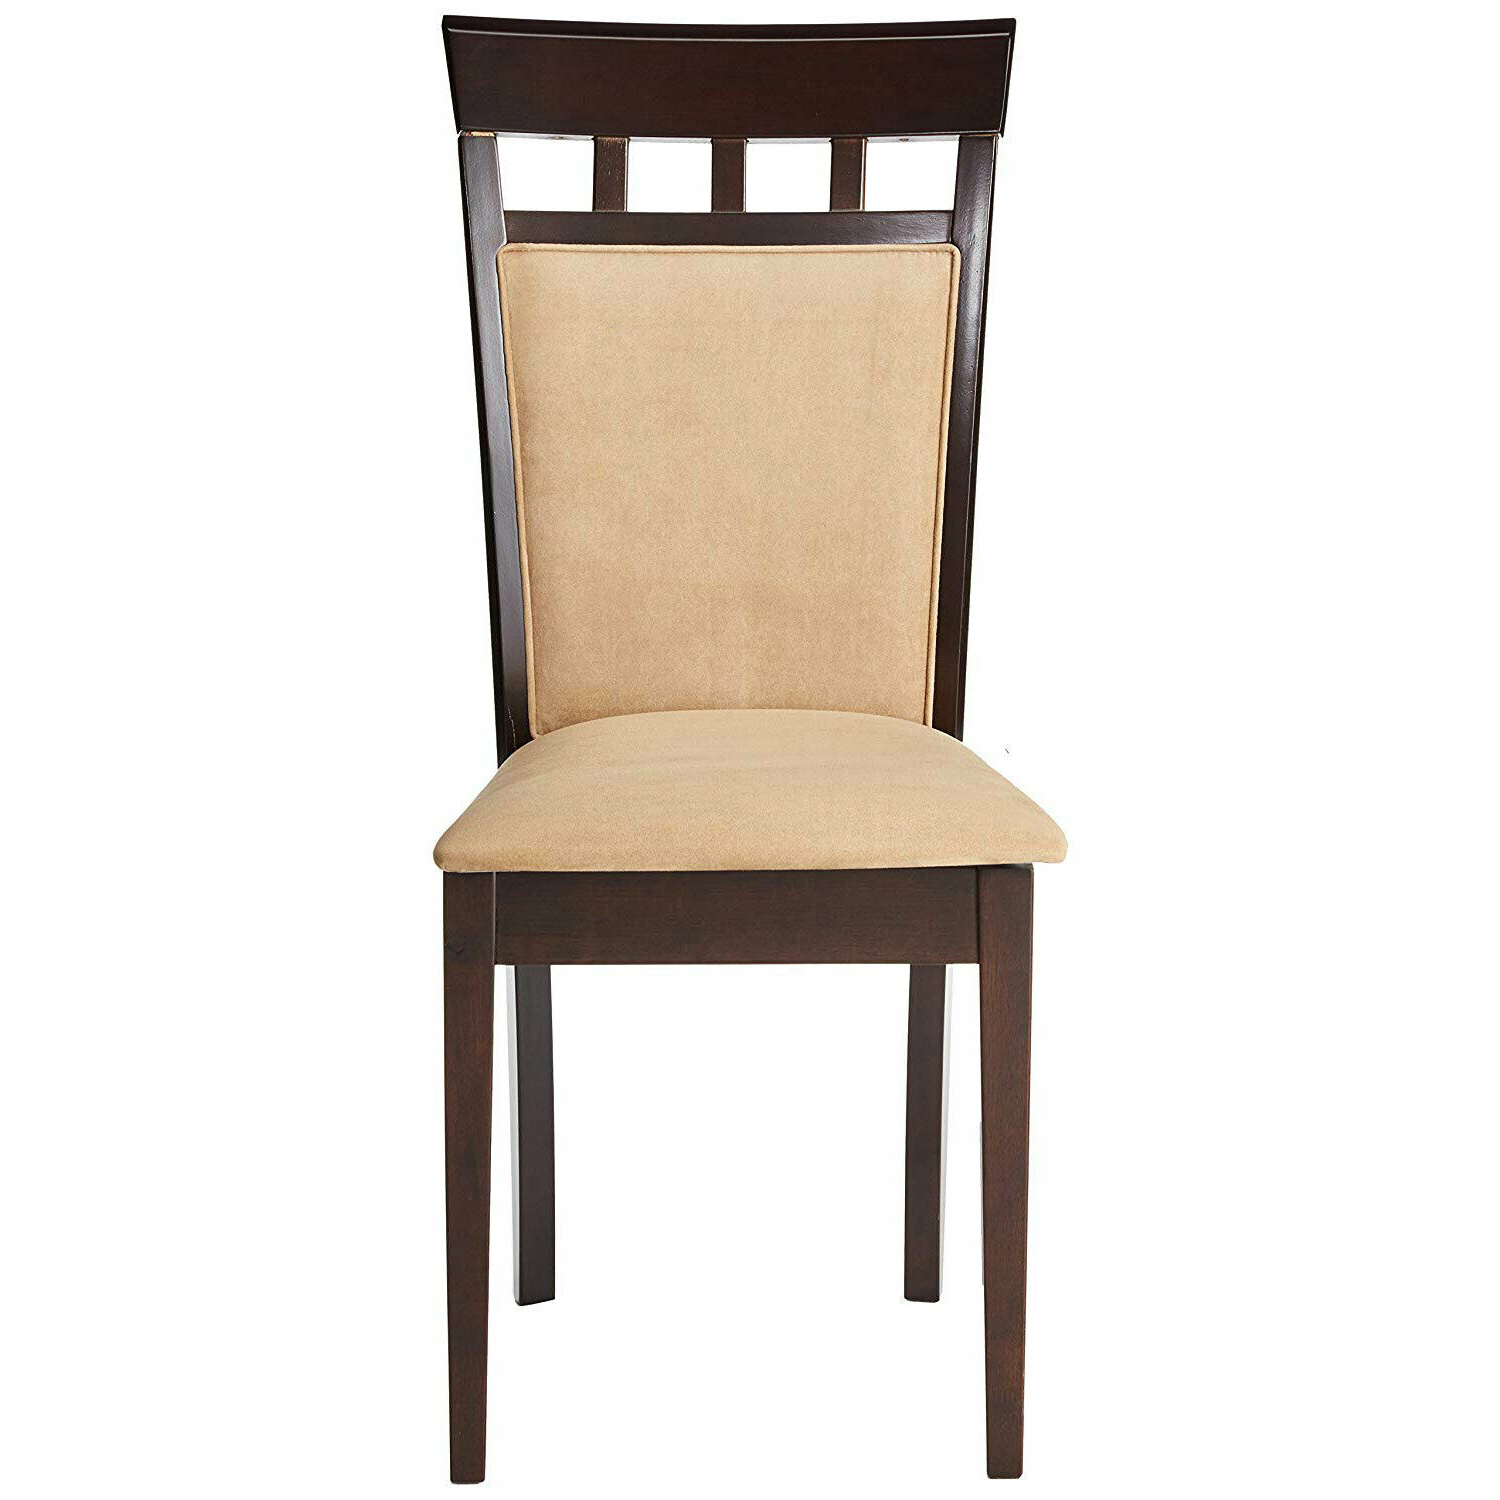 Adan 5 Piece Solid Wood Dining Sets (Set Of 5) Throughout Most Recent Glamour Home Adan Dining Chair – Set Of 2 For Sale Online (View 6 of 25)